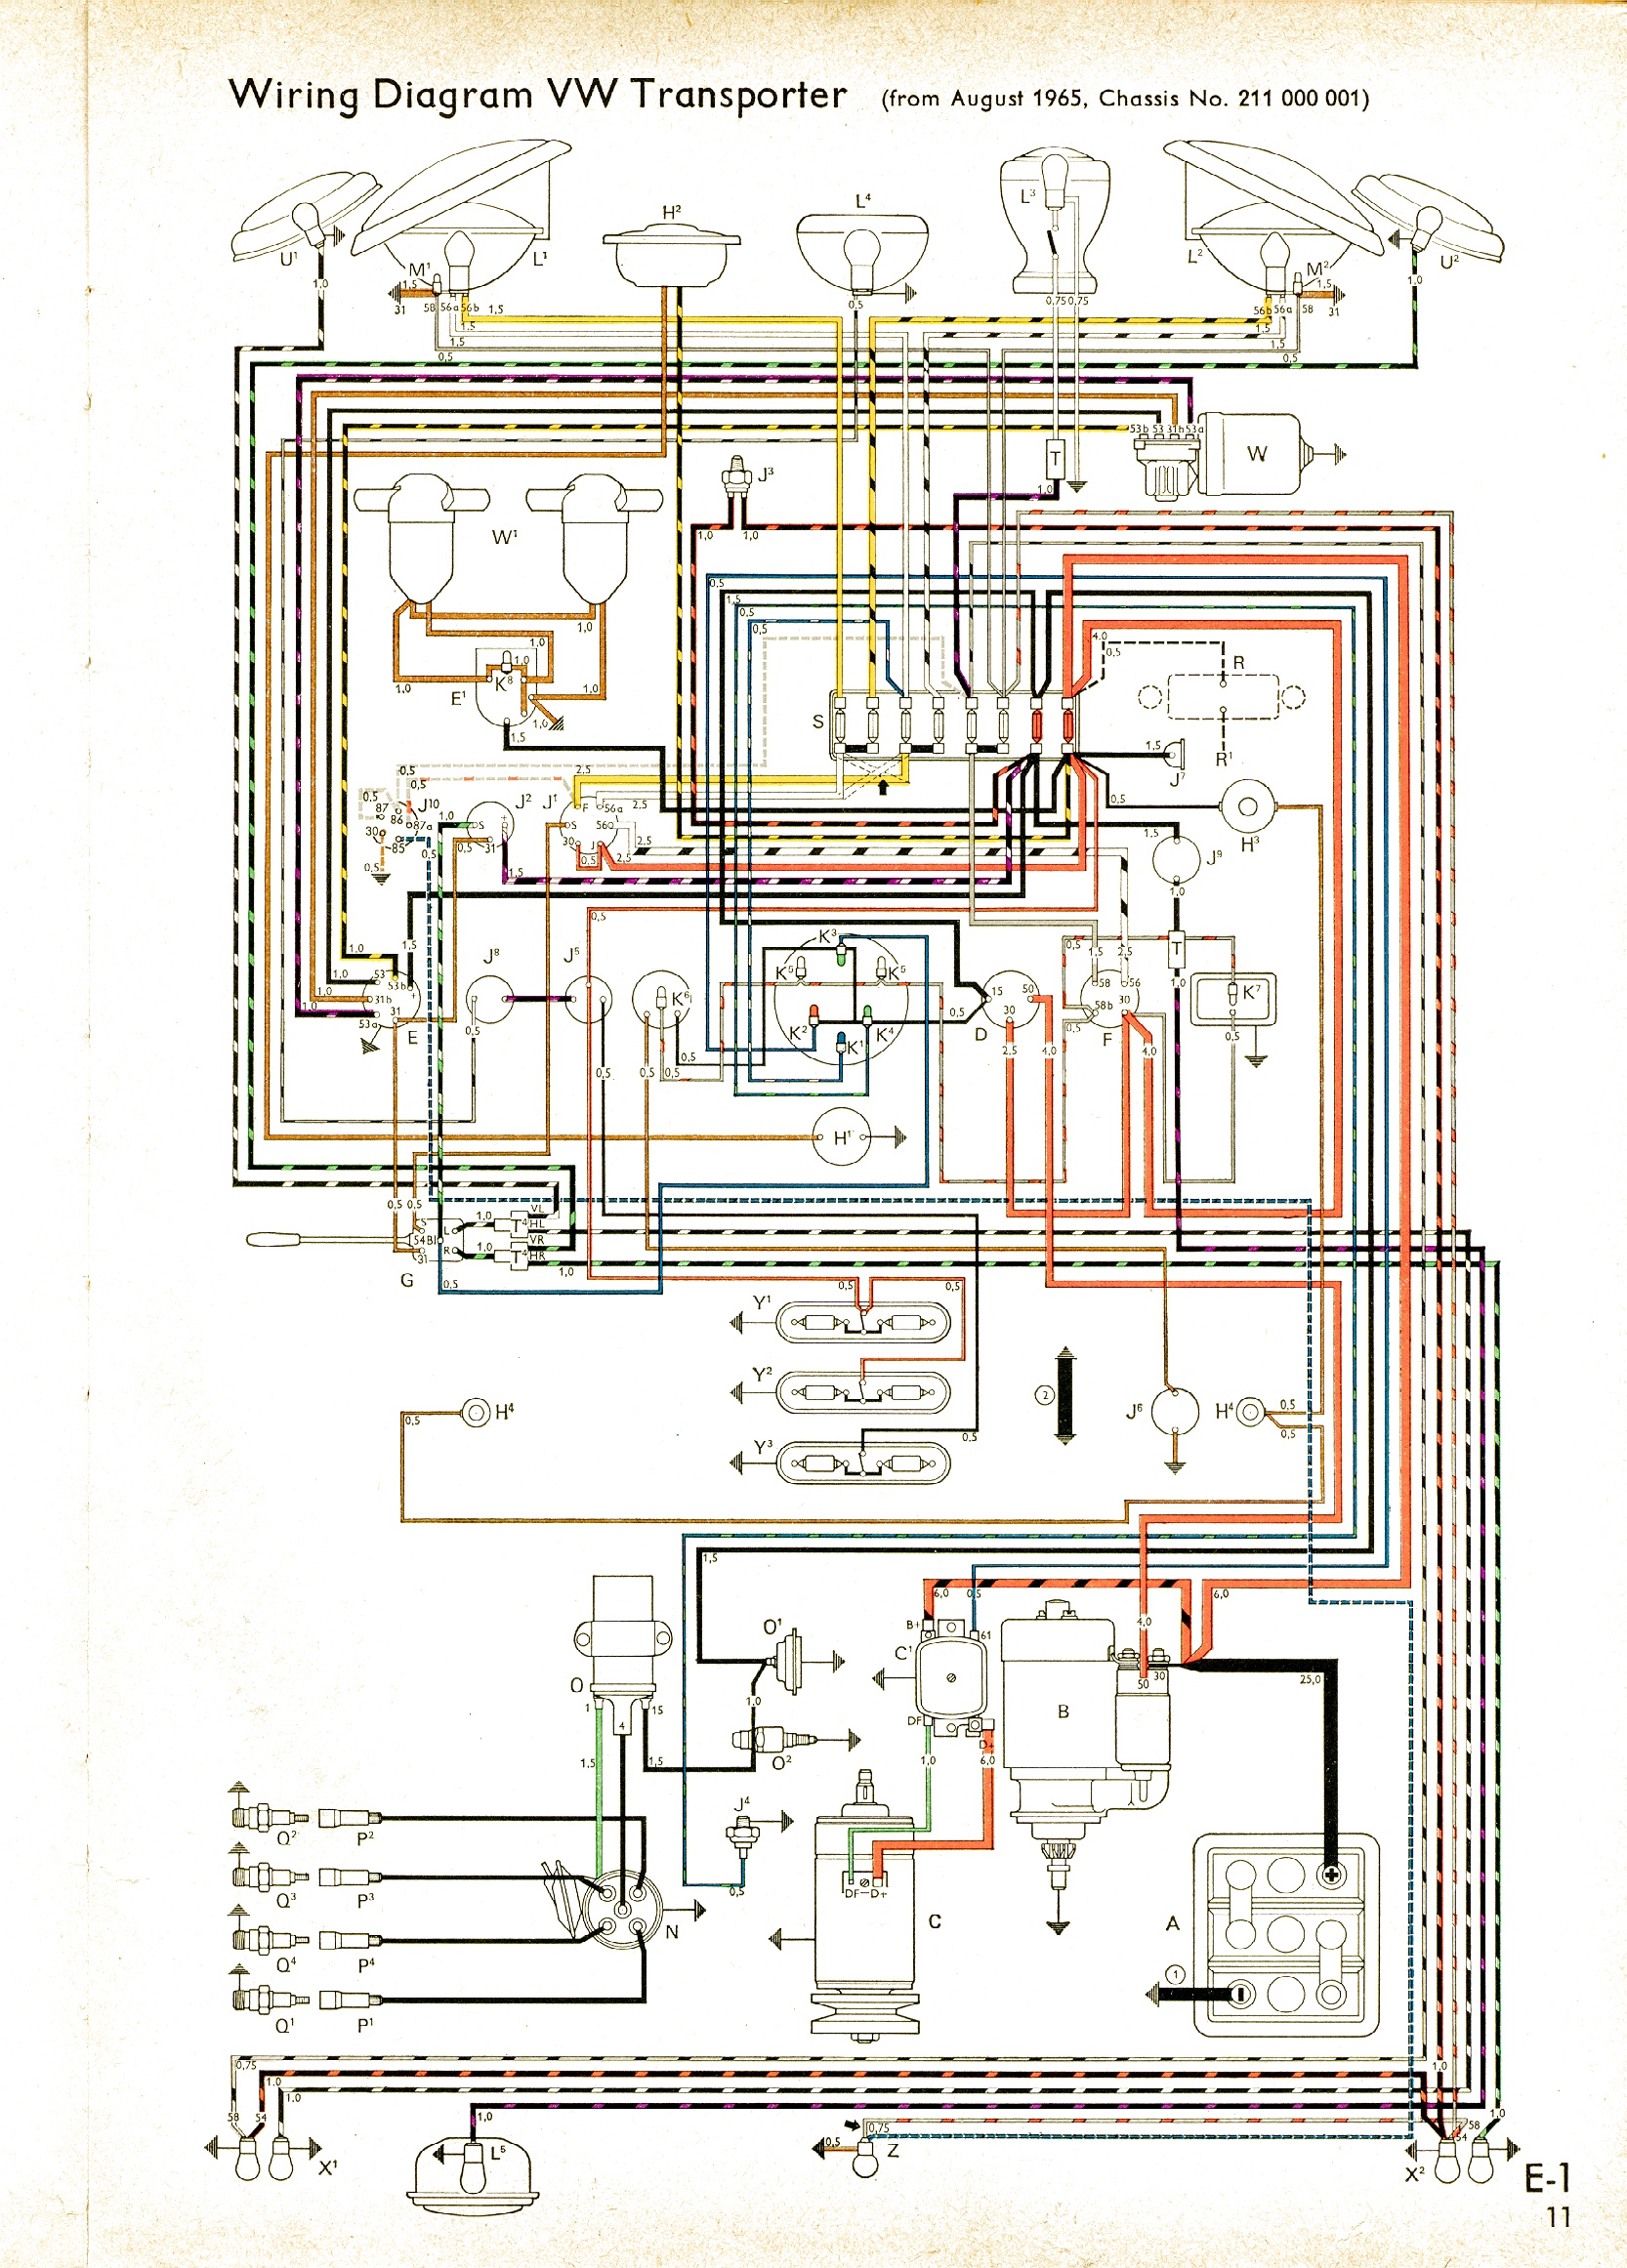 bus 65 vintagebus com vw bus (and other) wiring diagrams vw polo wiring diagram download at pacquiaovsvargaslive.co